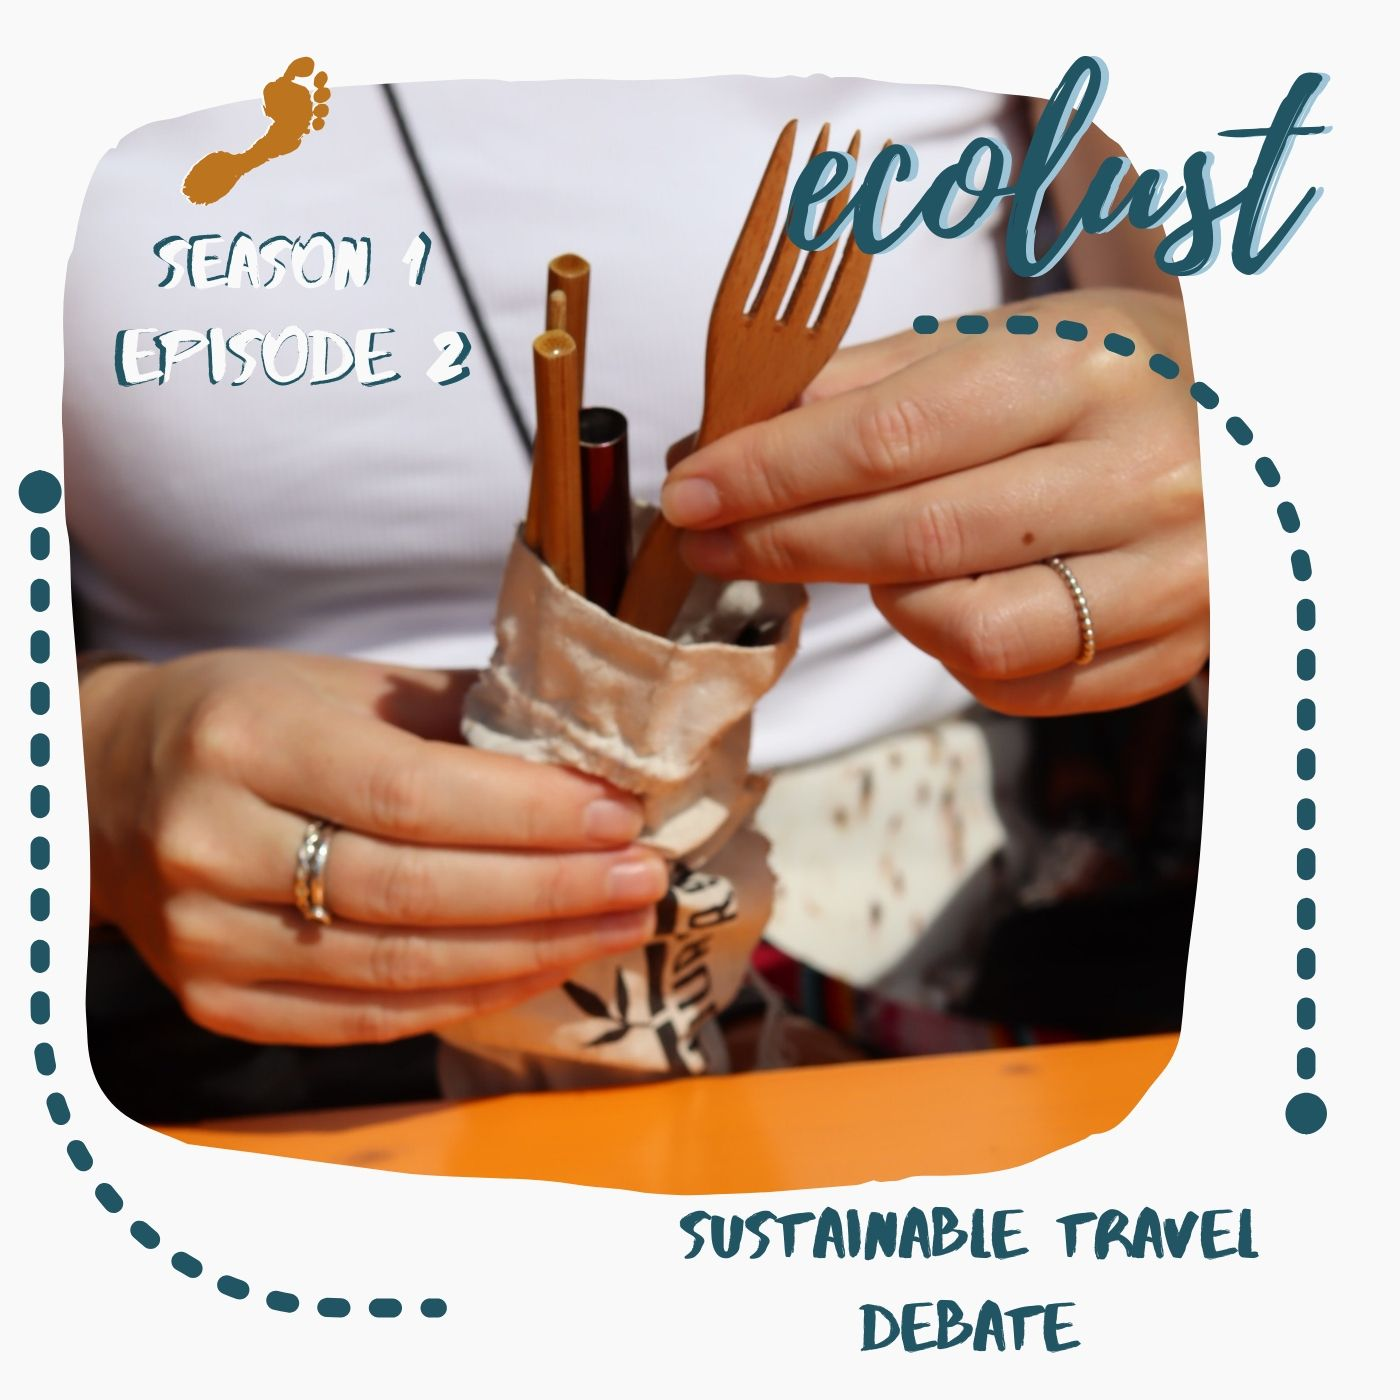 EcoLust S1E2: Sustainable Travel Debate